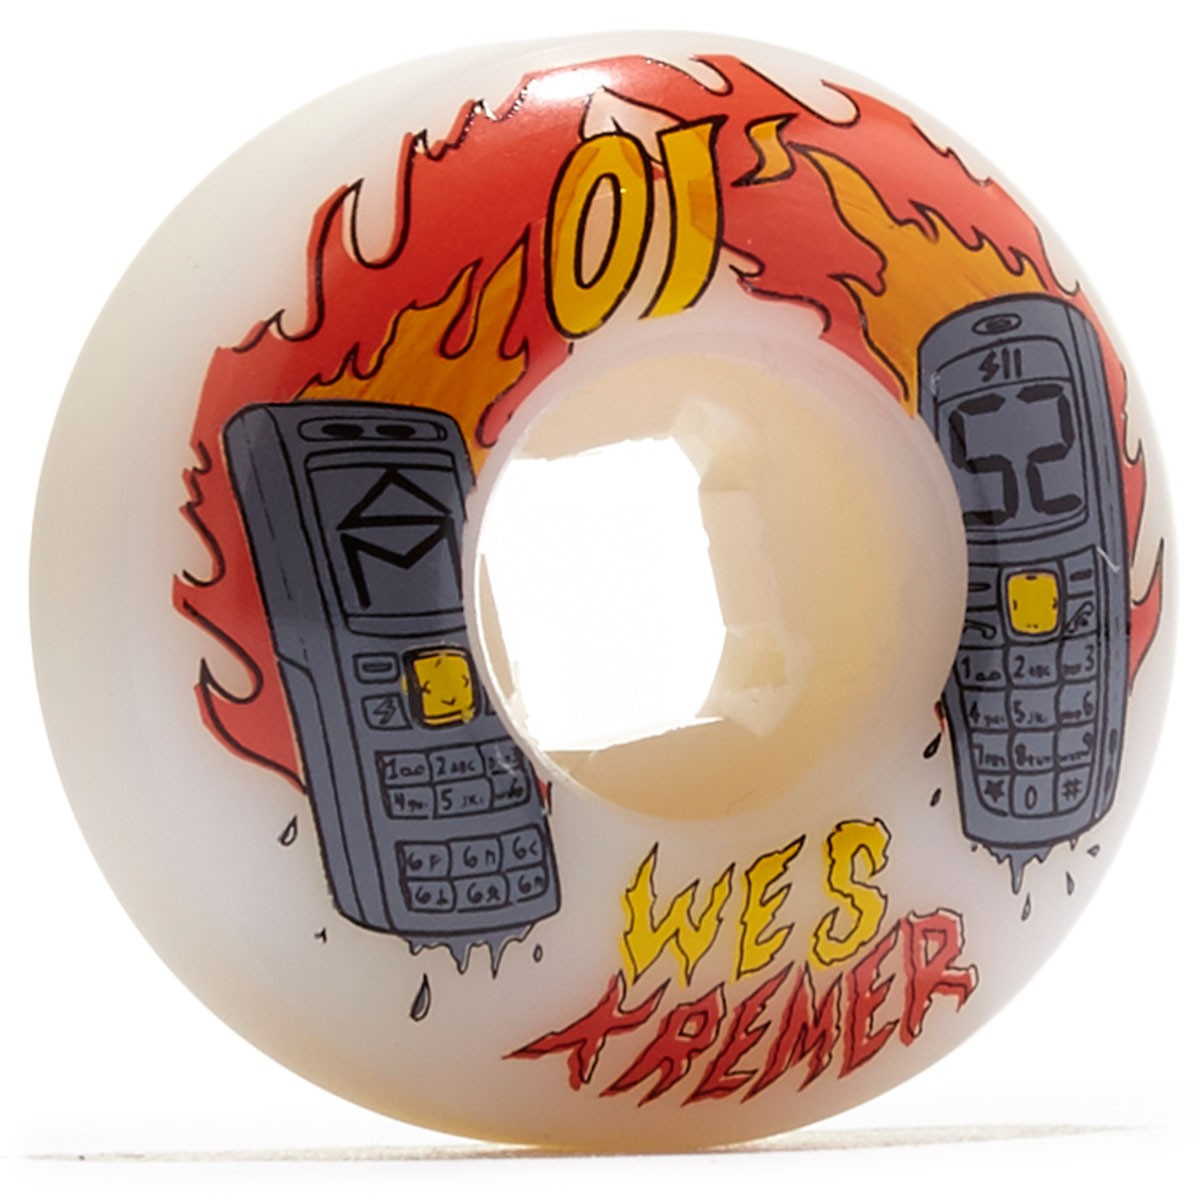 OJ Kremer Burners RIP EZ Edge Skateboard Wheels - 52mm 101a